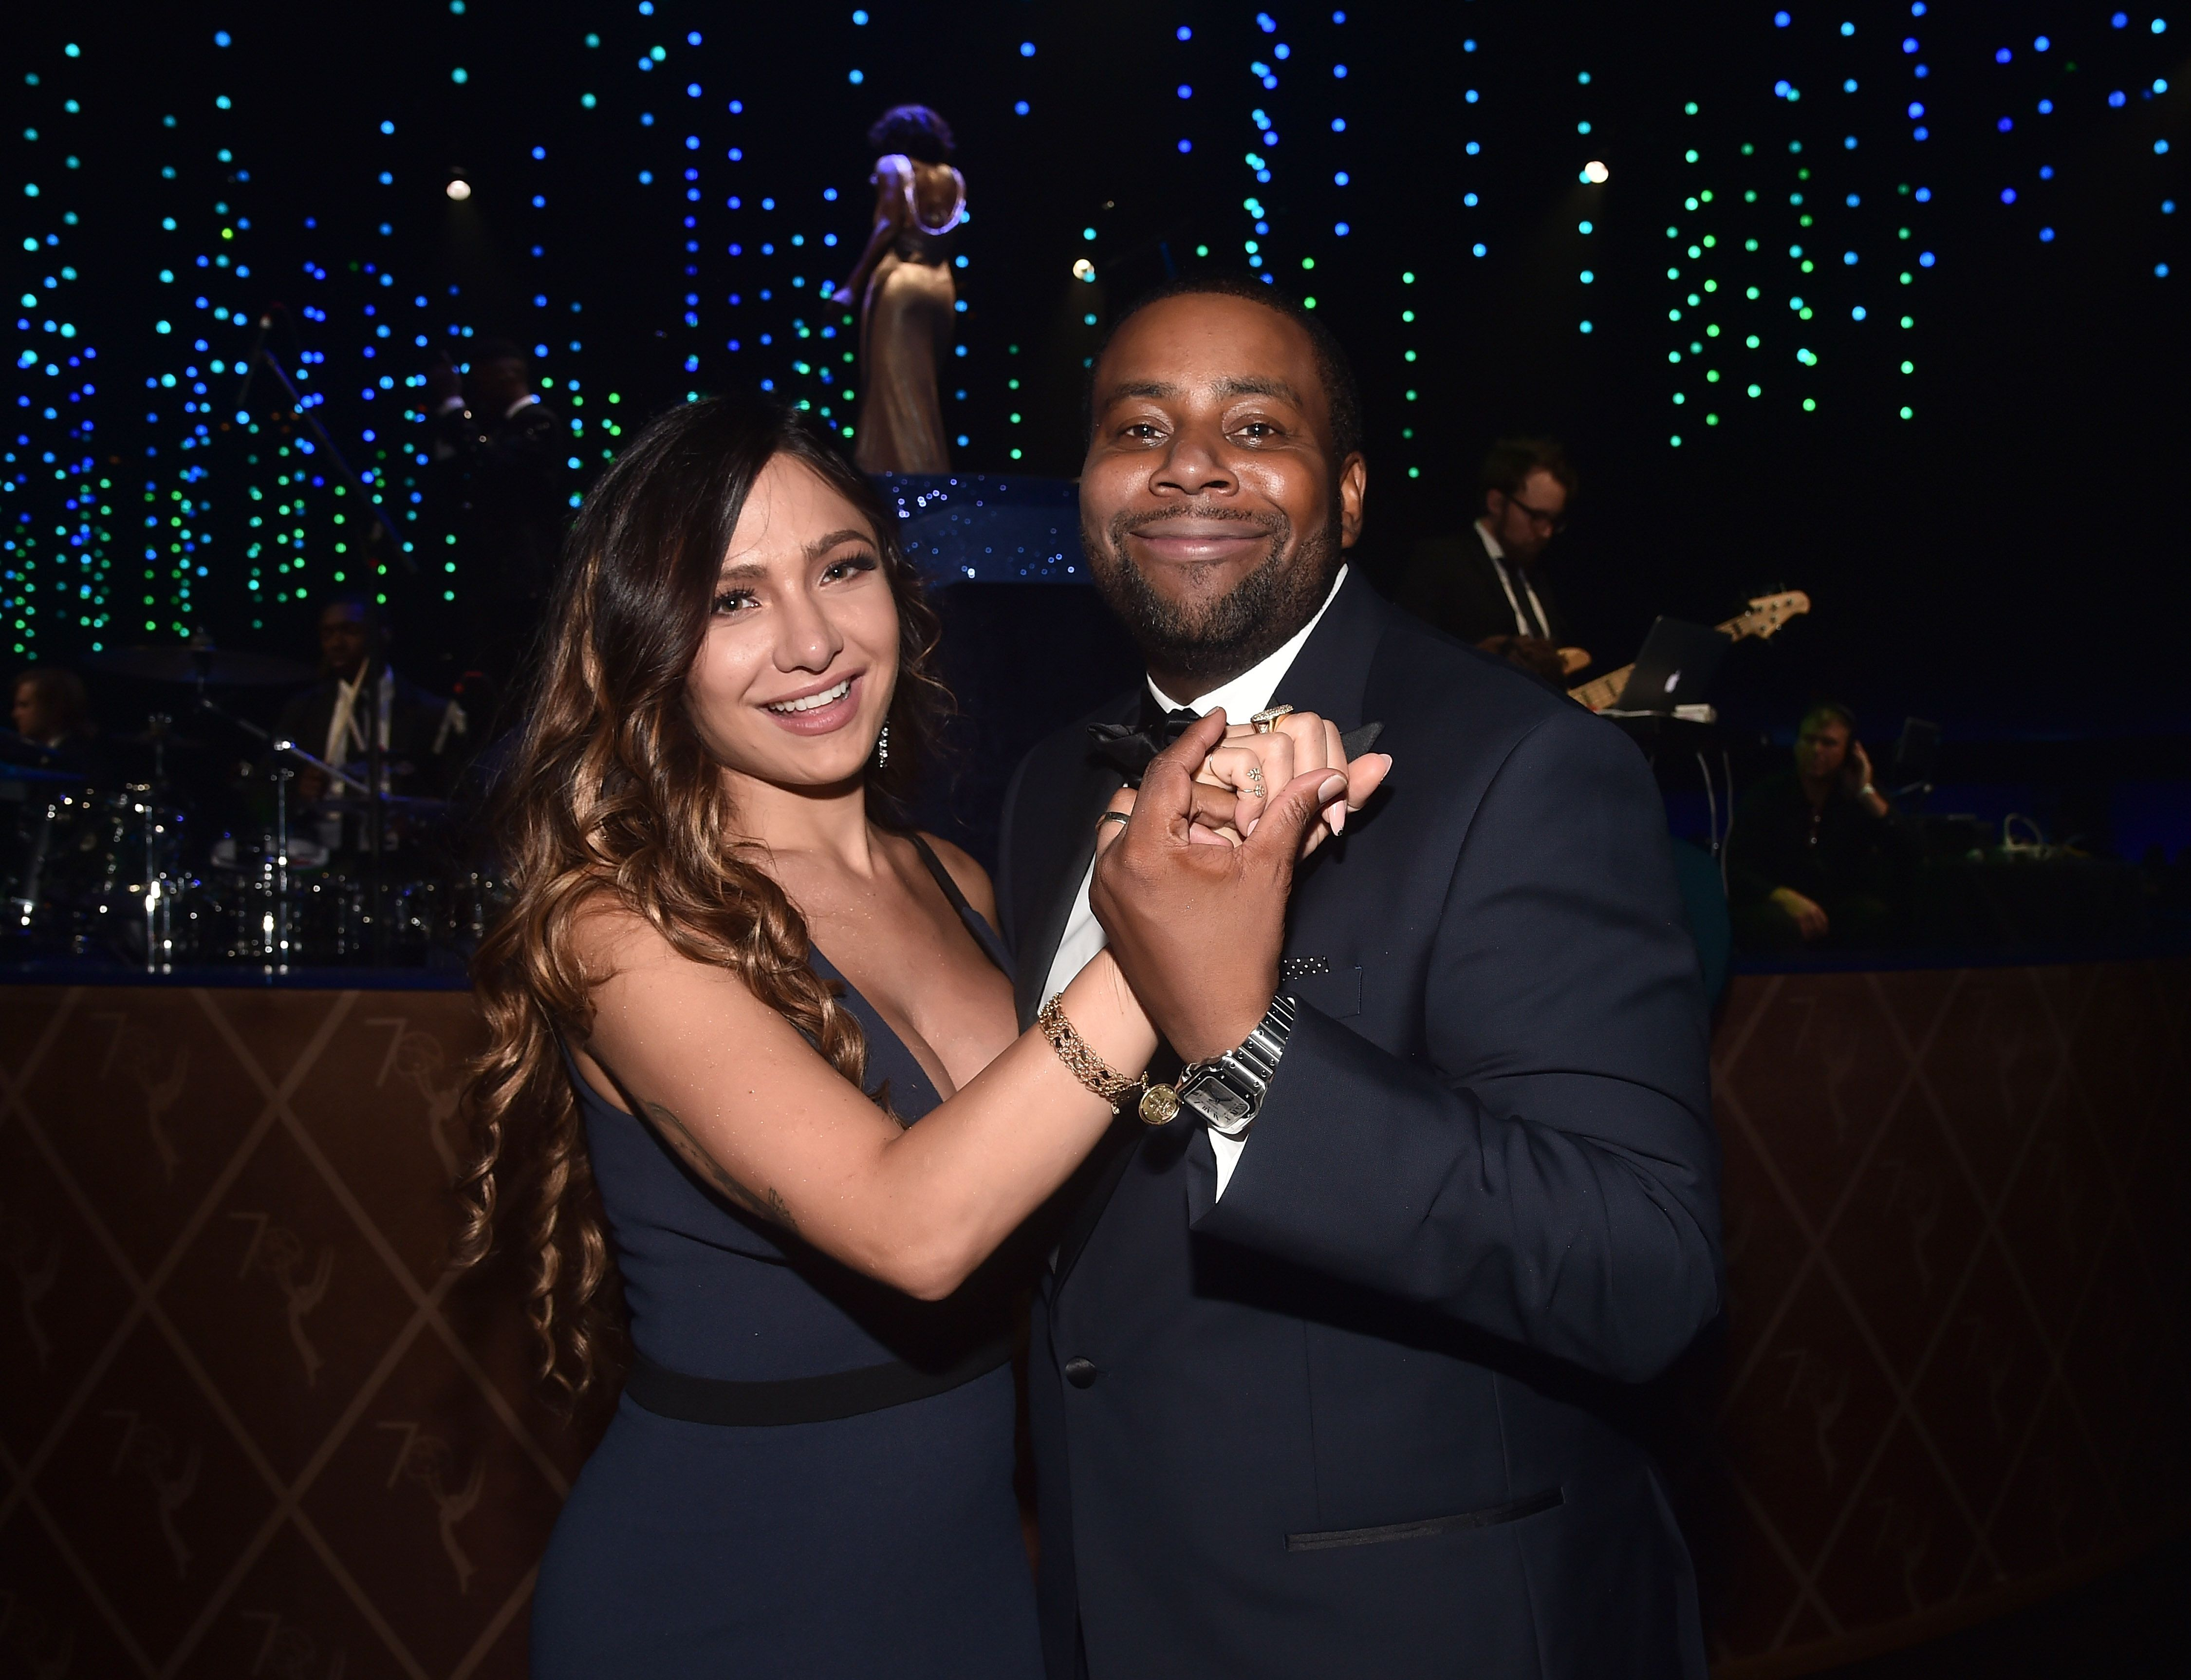 Christina Evangeline and Keenan Thompson at the 2018 Creative Arts Ball in Los Angeles | Source: Getty Images